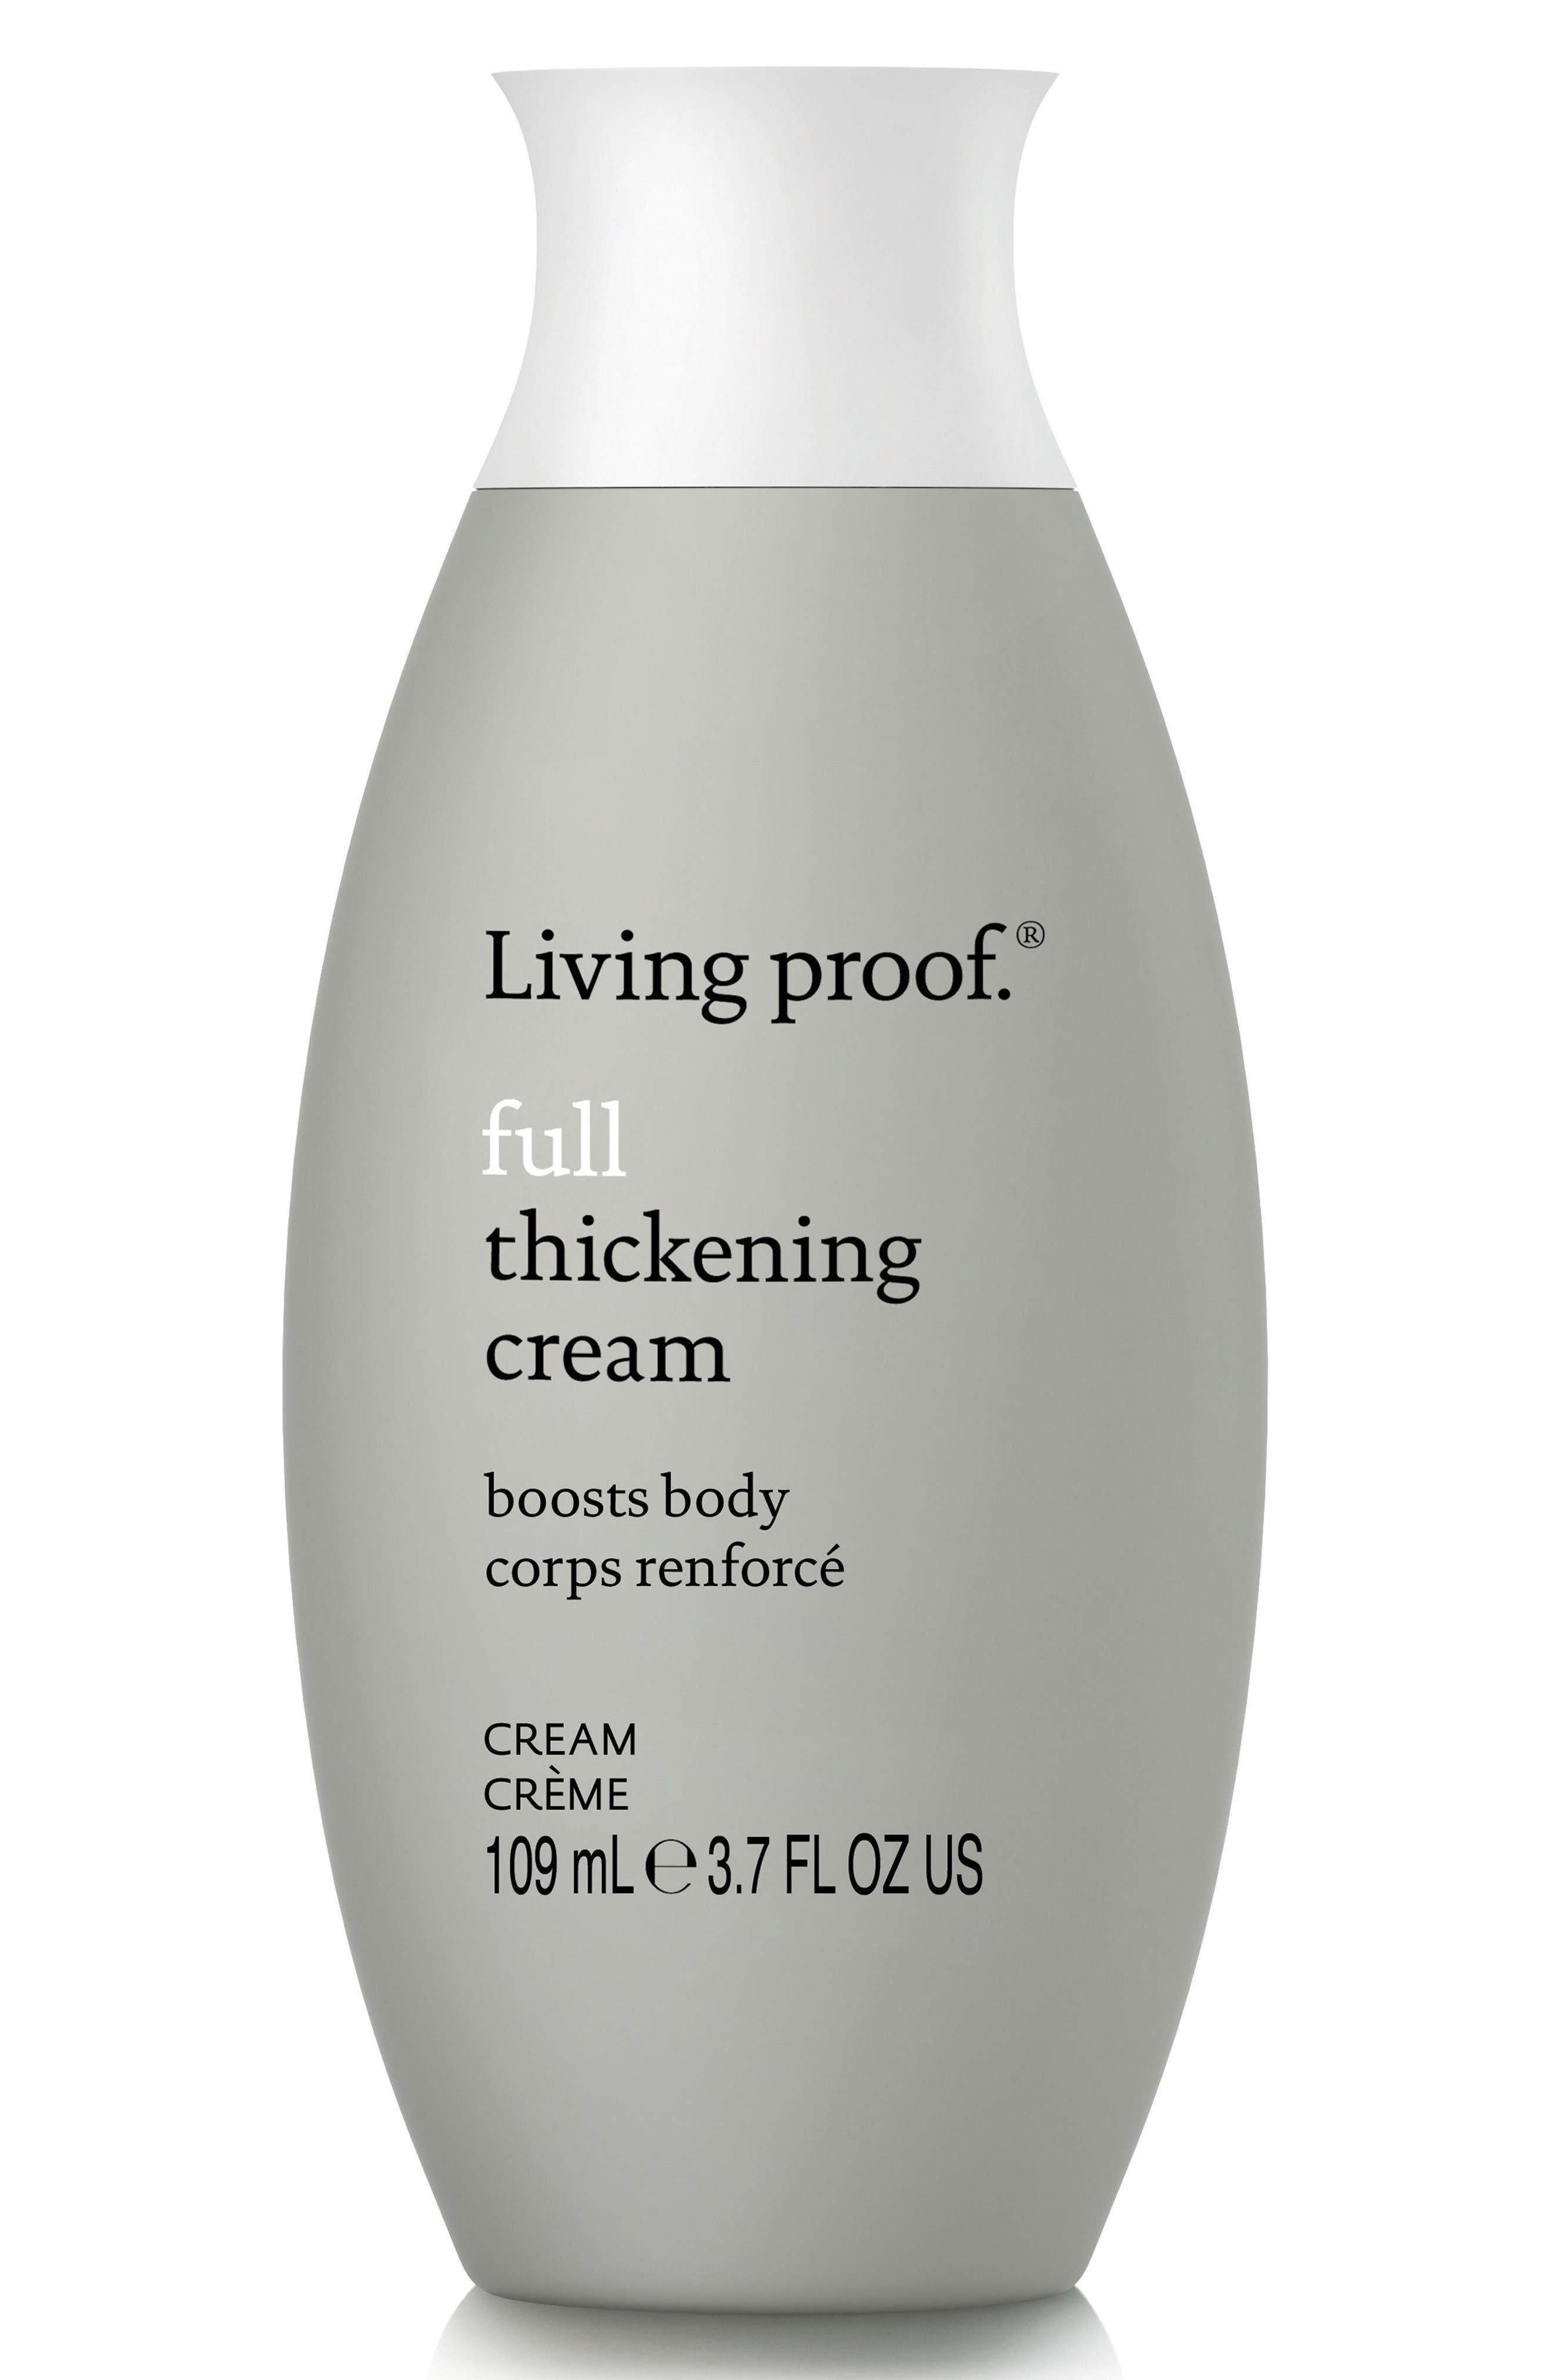 Living proof® Full Thickening Cream